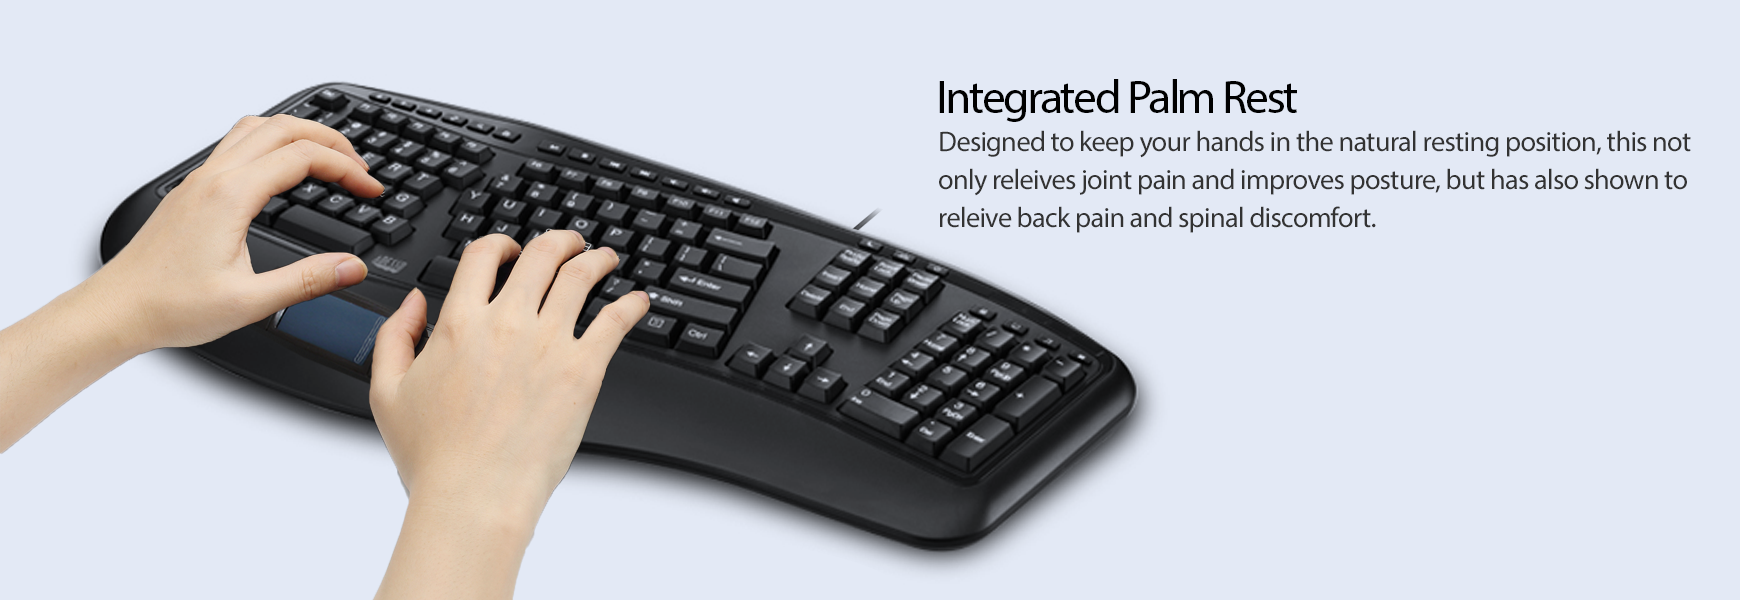 Integrated Palm Rest